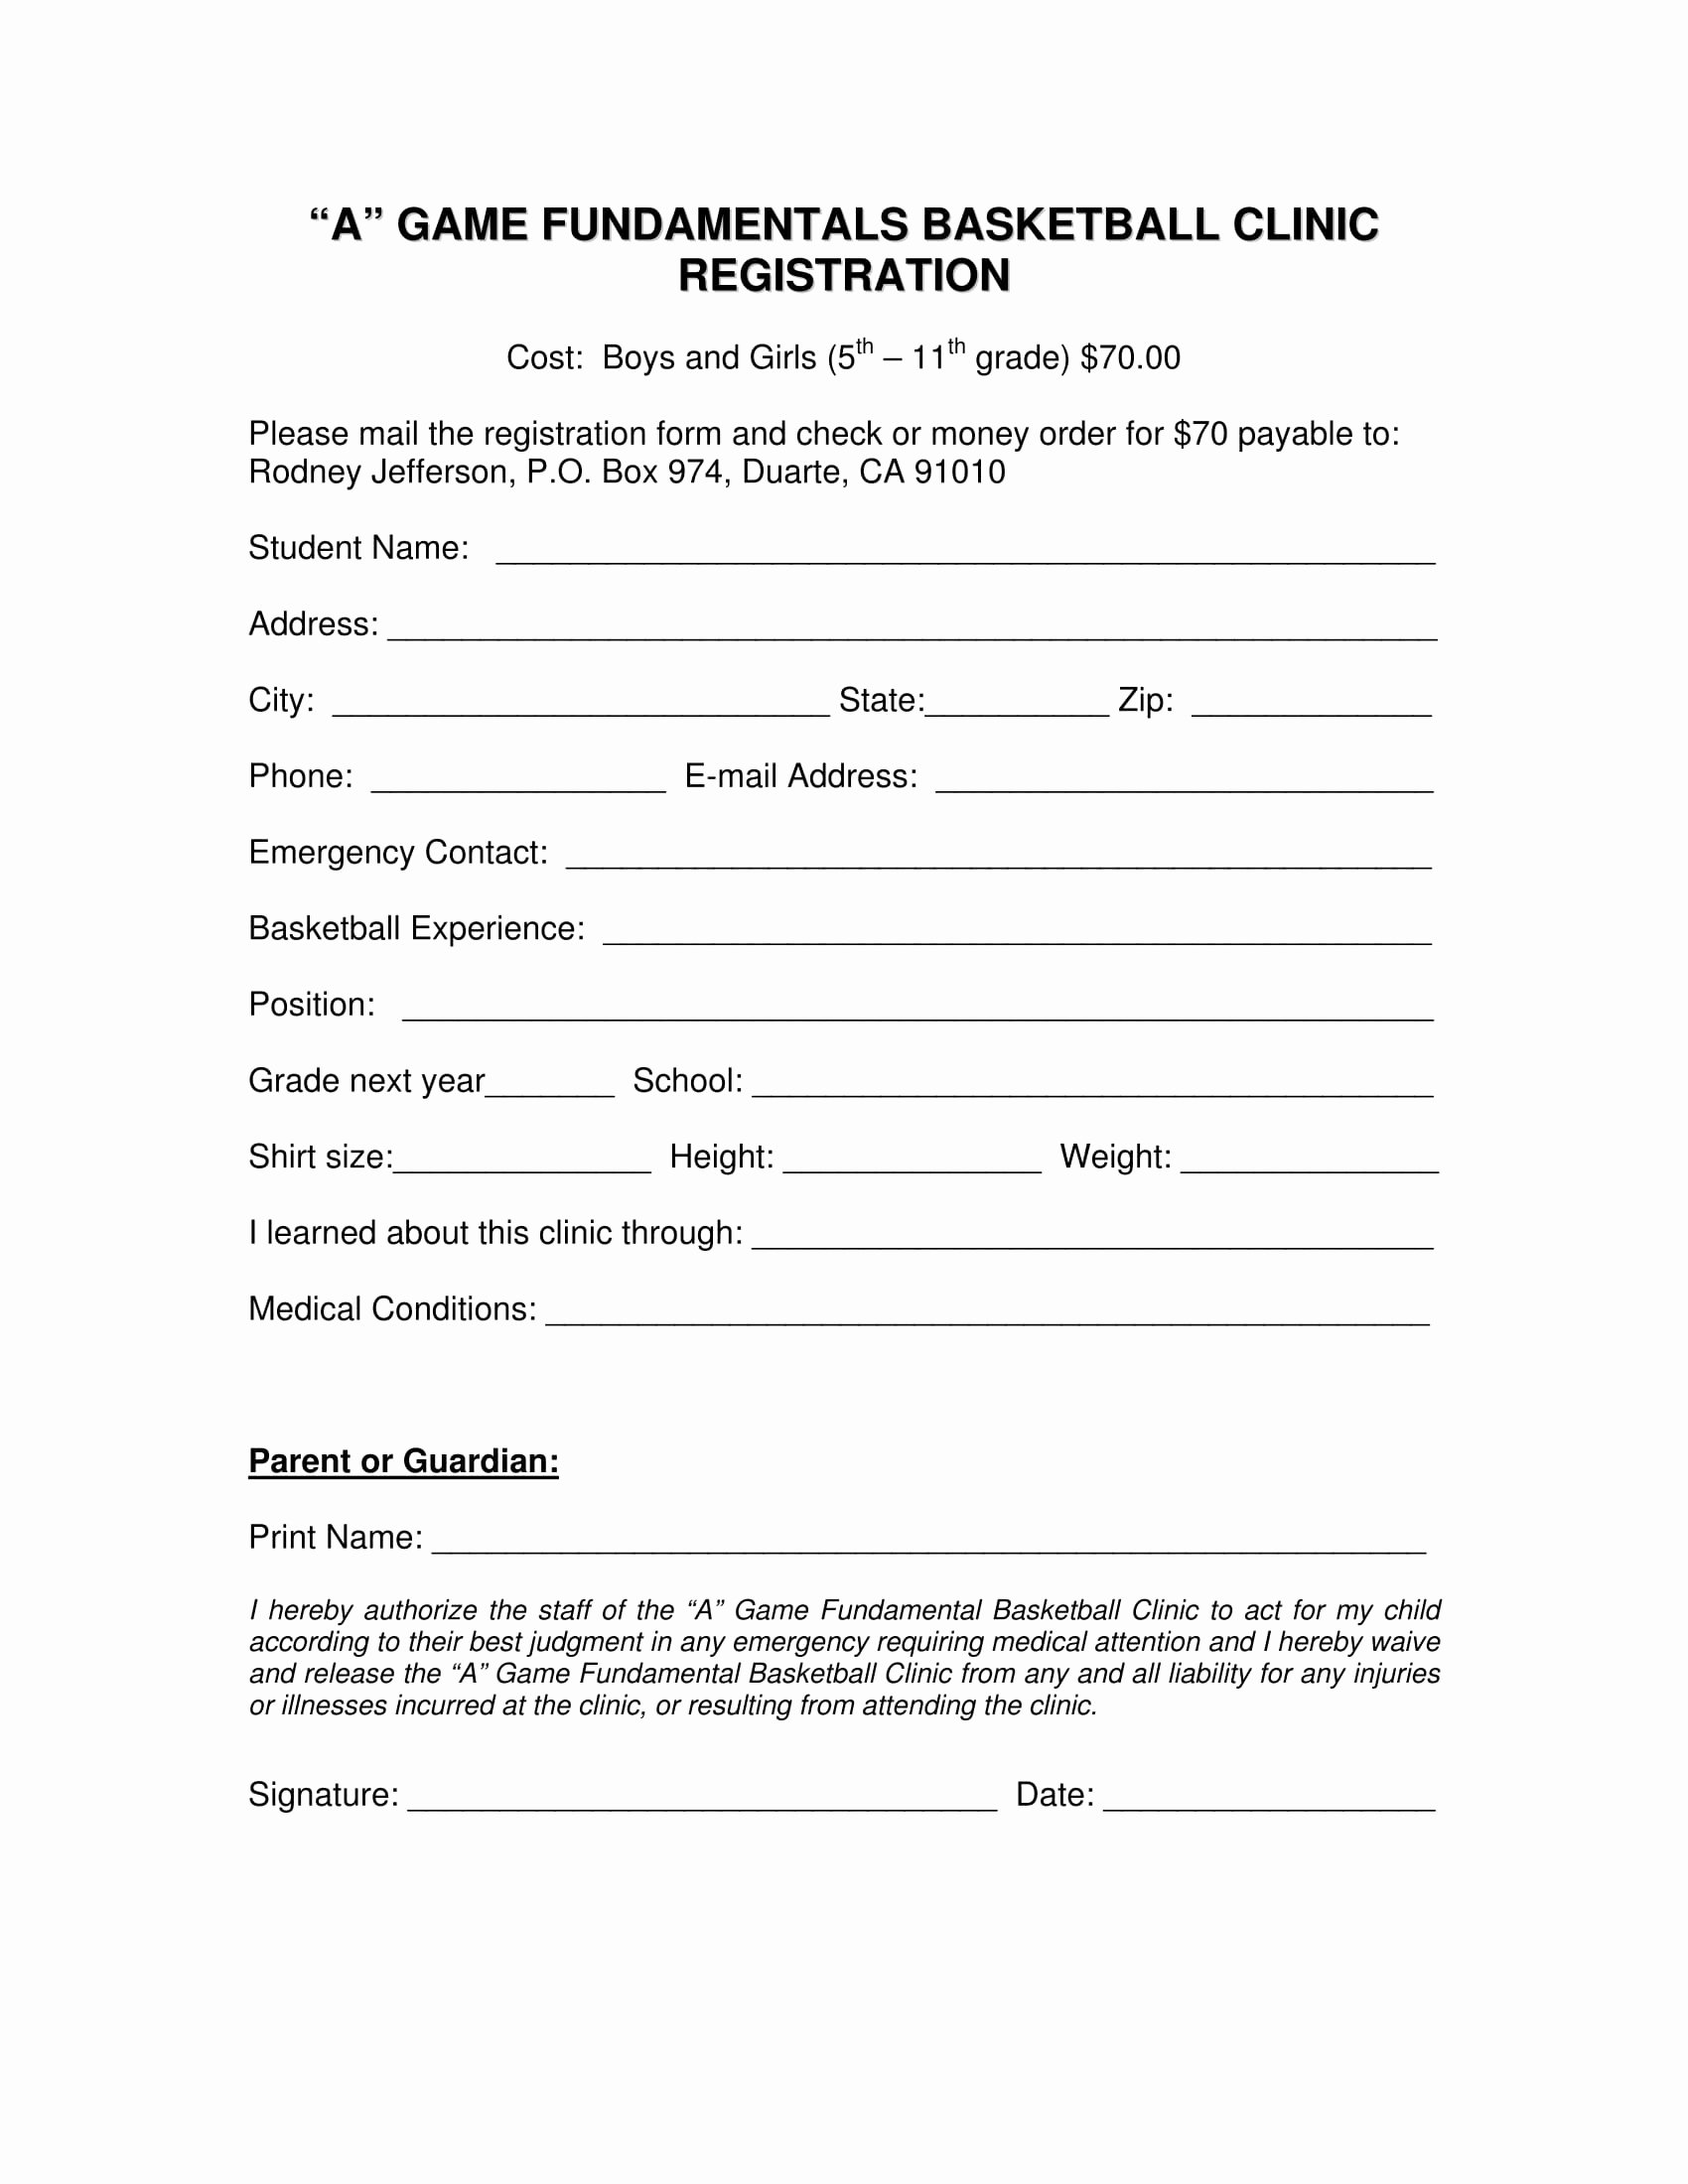 Basketball tournament Registration form Template Fresh 10 Basketball Registration form Samples